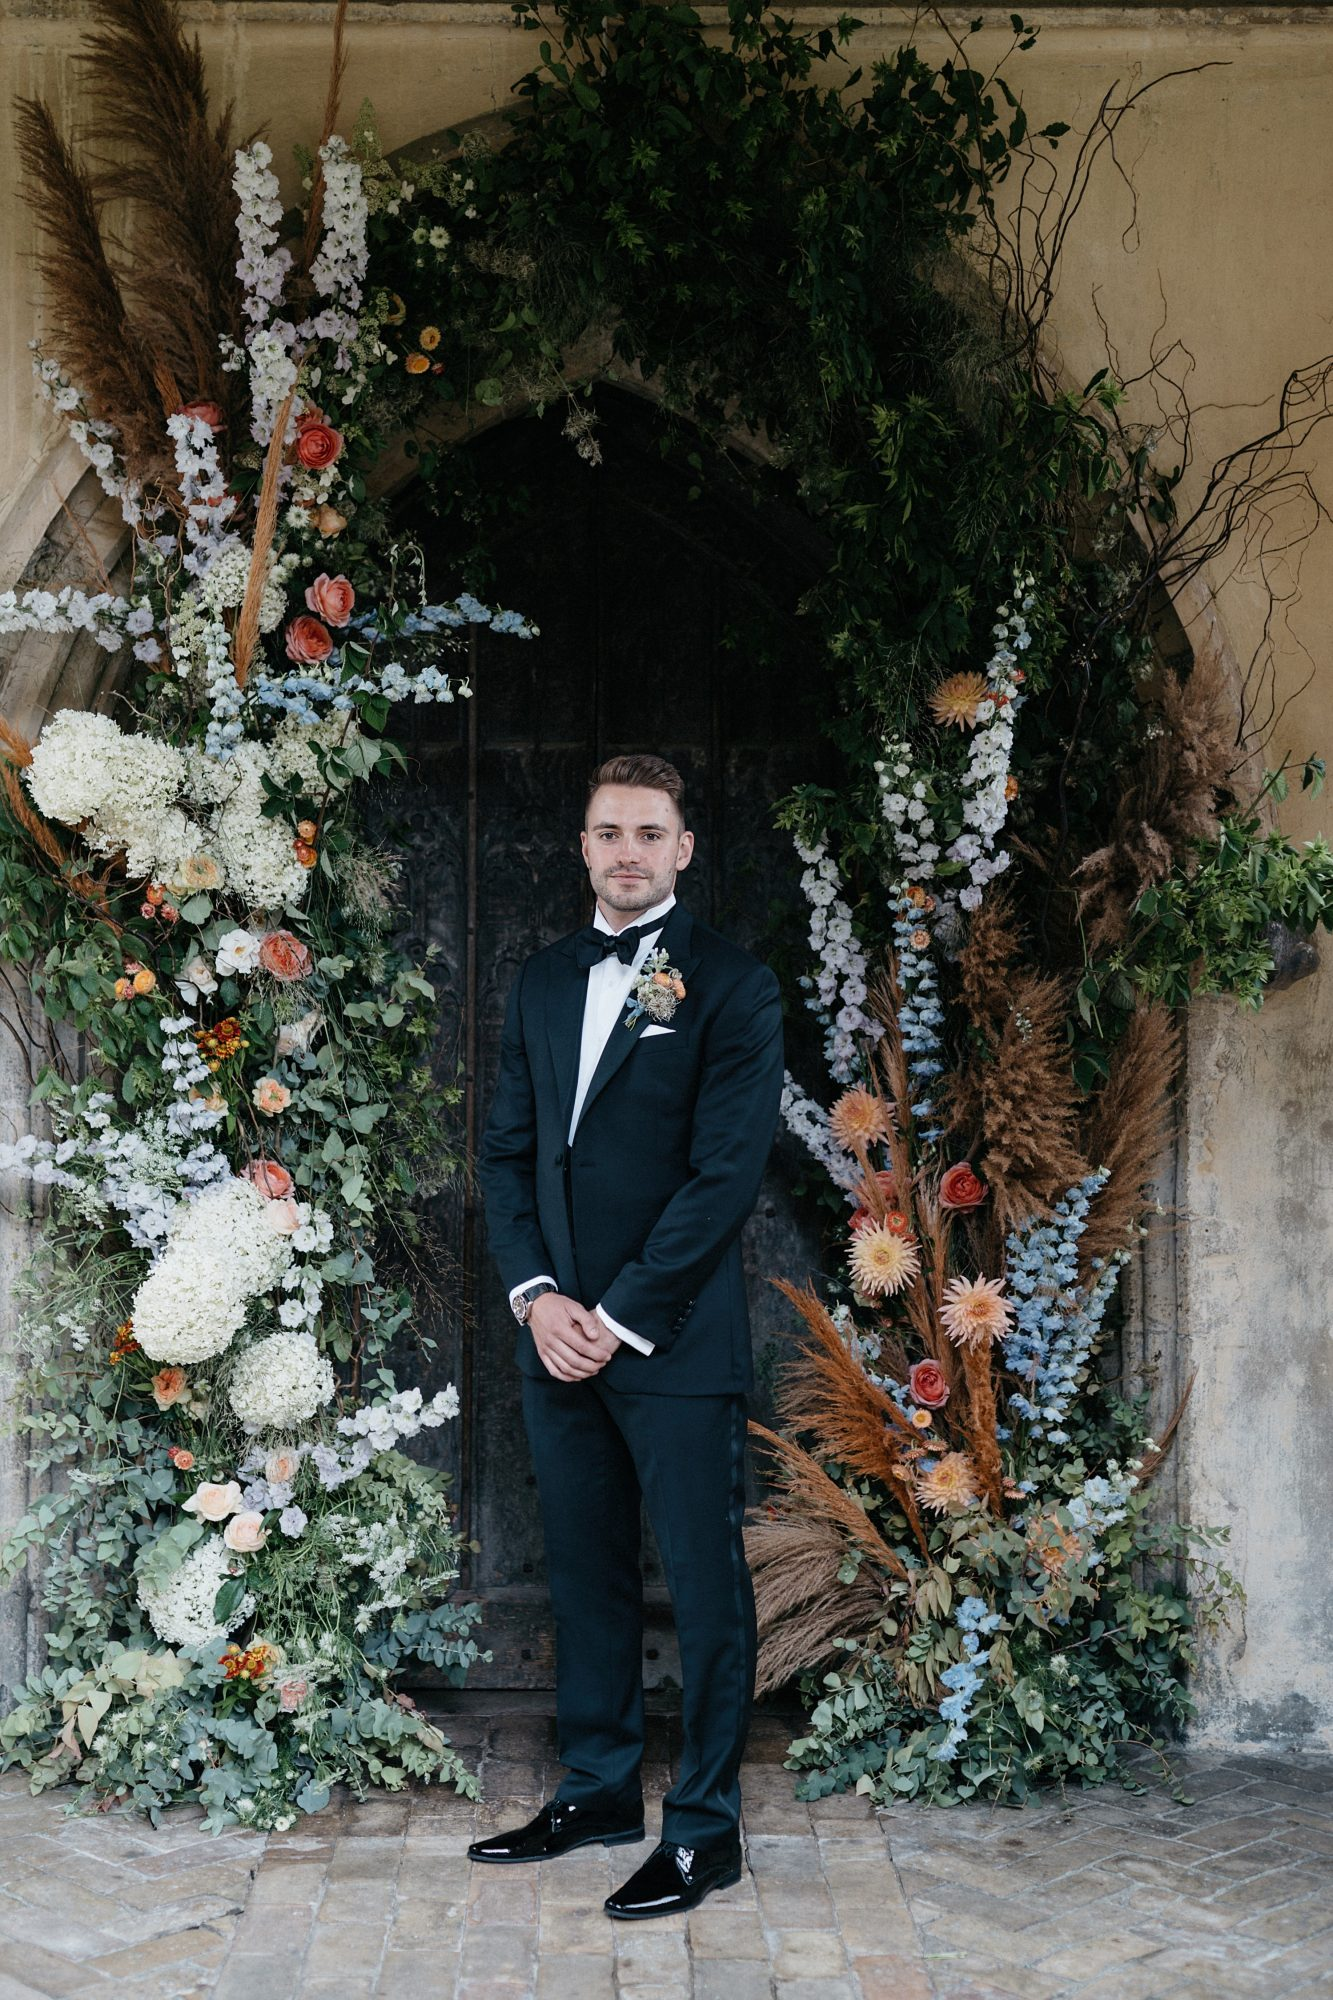 laurie lee wedding groom surrounded by floral decor